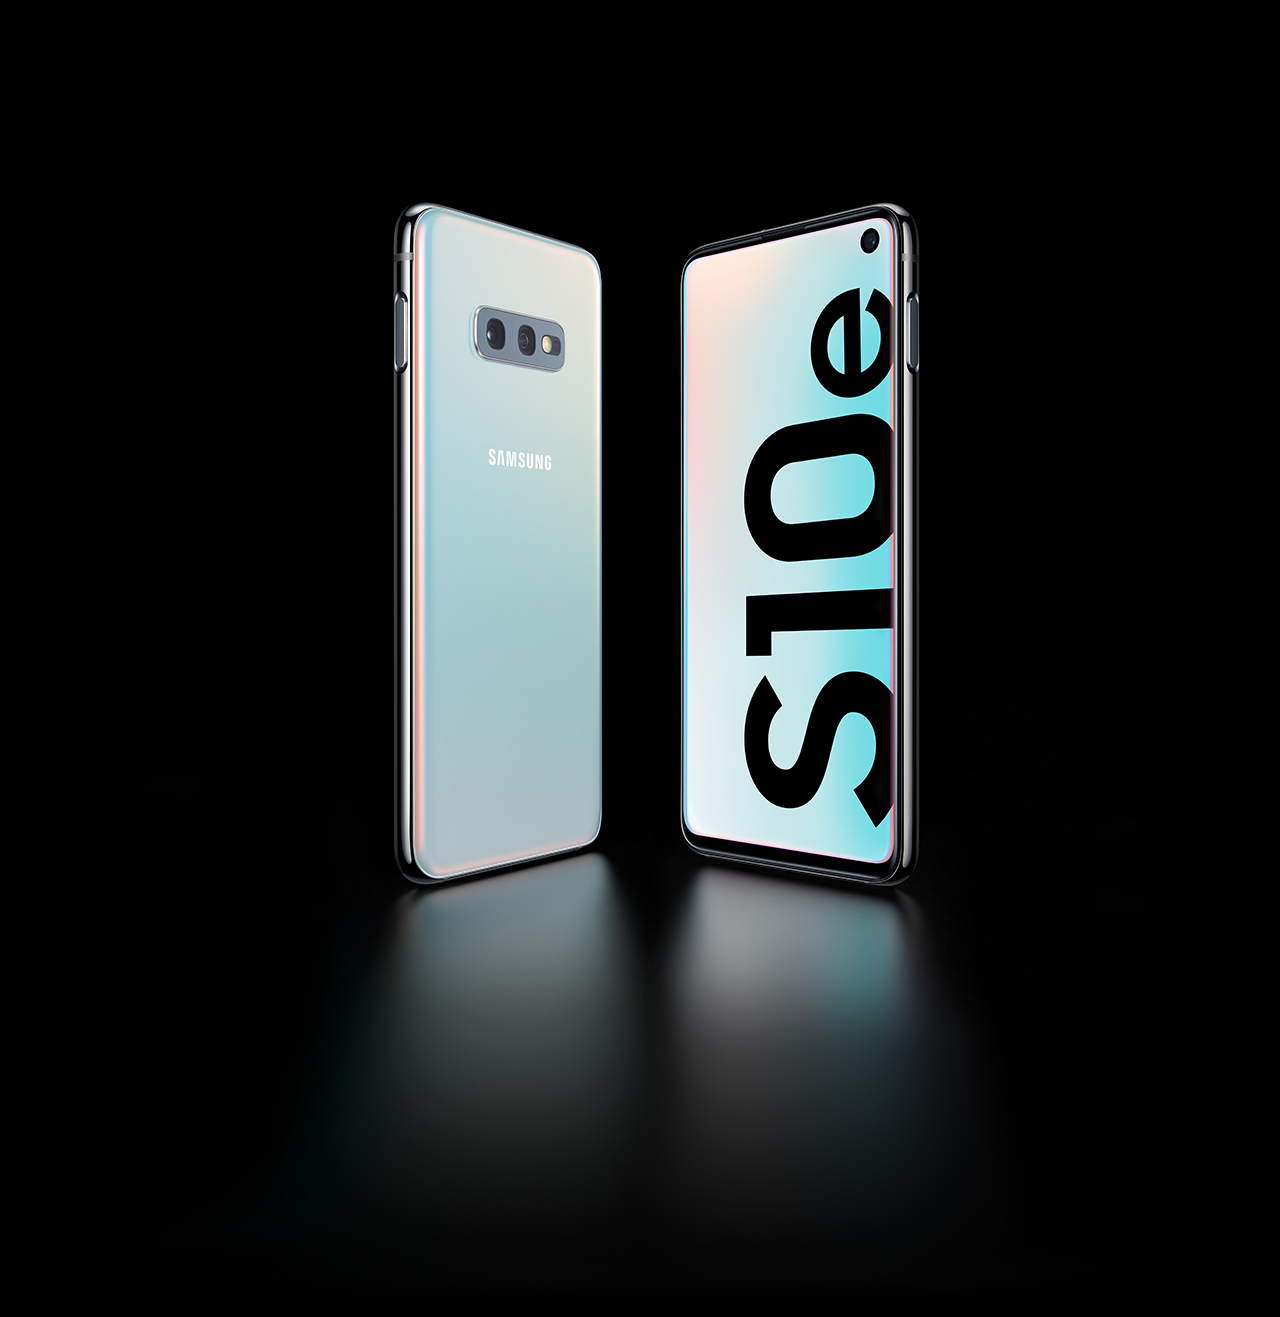 Galaxy S10e Deals And Contracts From Vodafone